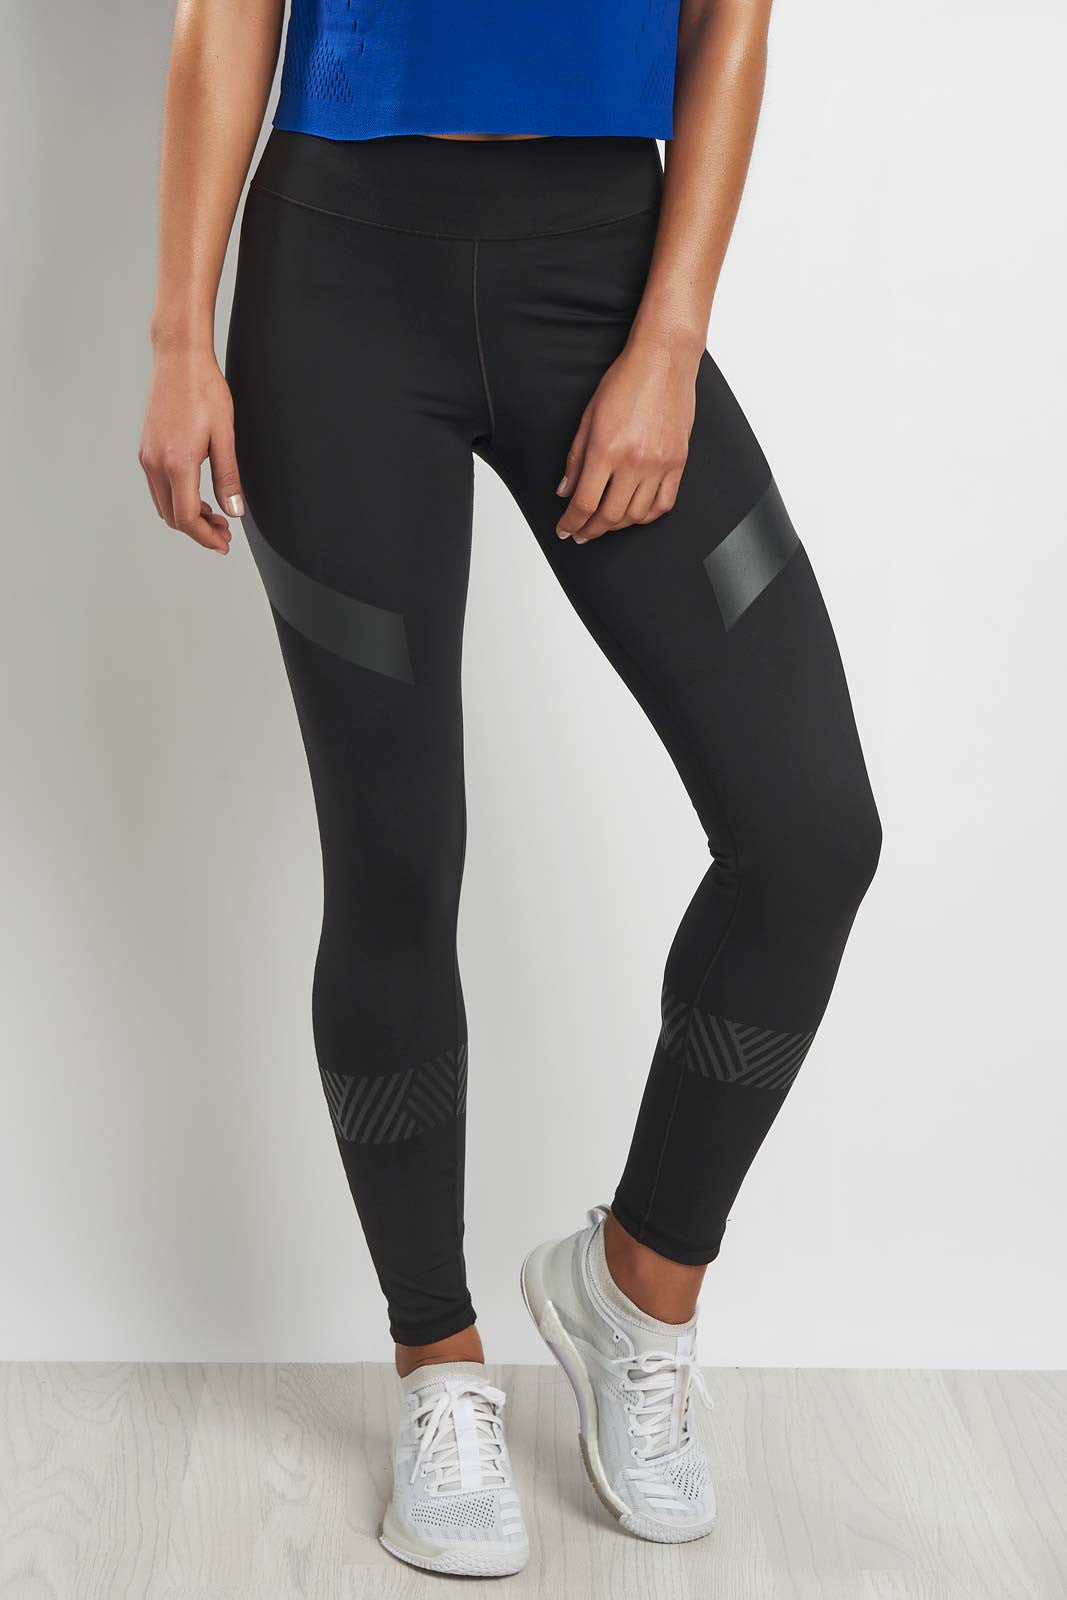 ADIDAS Ultimate Tight - Black image 1 - The Sports Edit